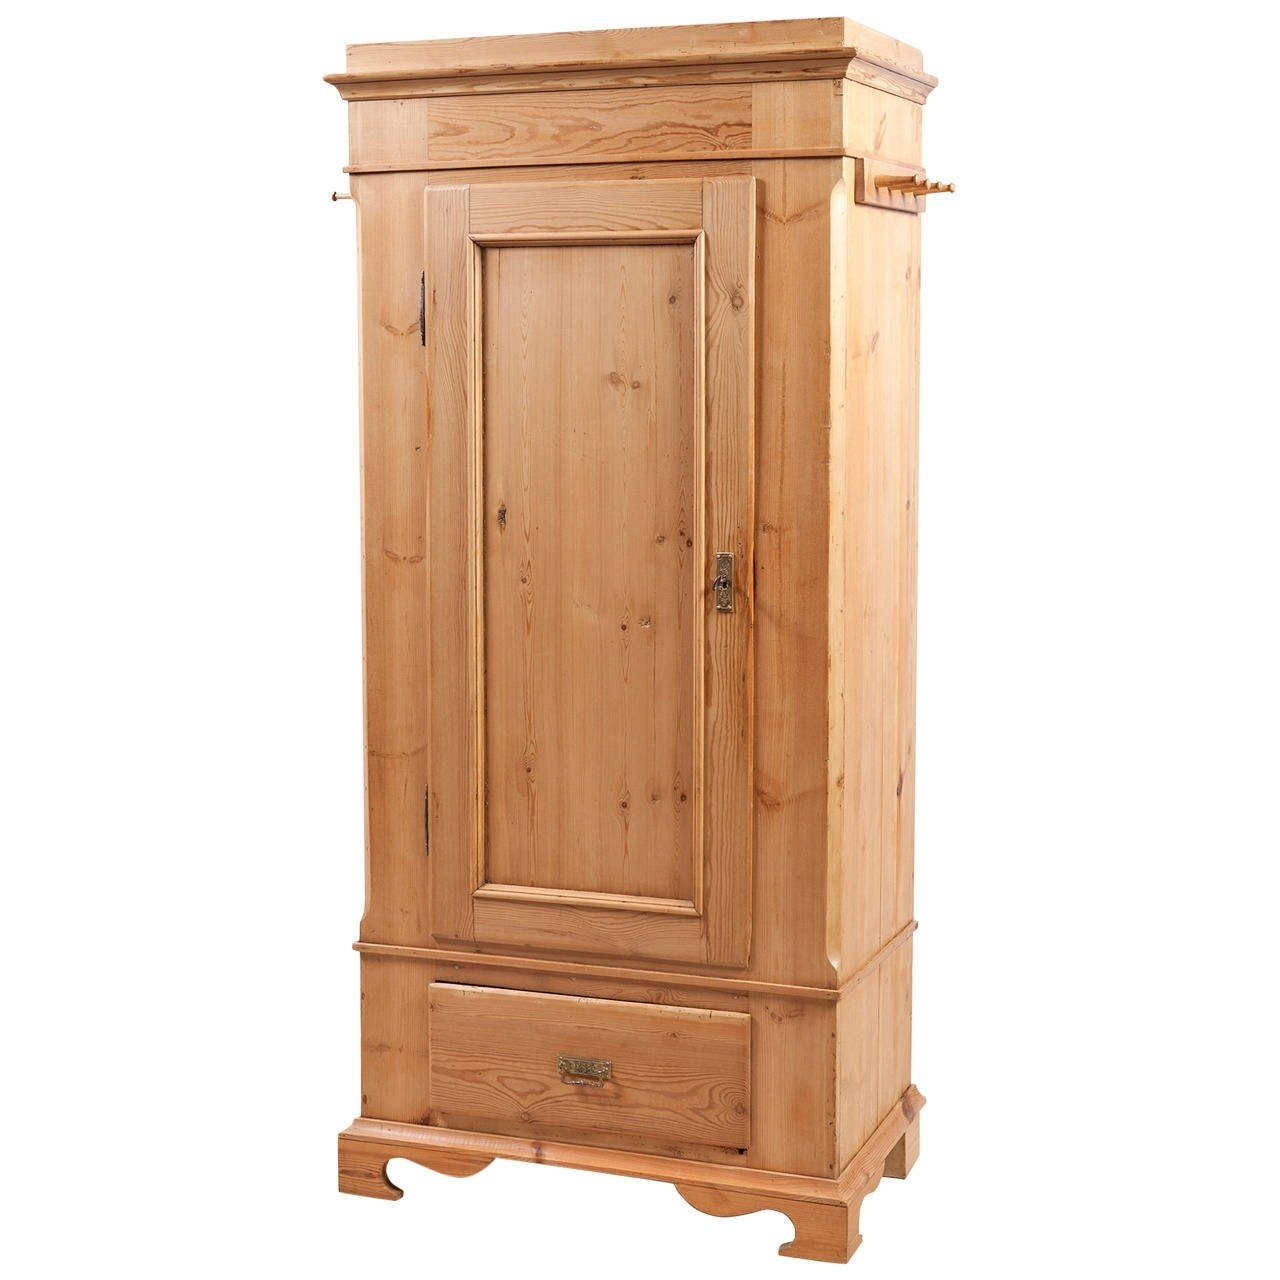 Single Pine Wardrobes In Most Current Single Door Danish Wardrobe Armoire In Pine, Circa 1845 At 1Stdibs (View 12 of 15)